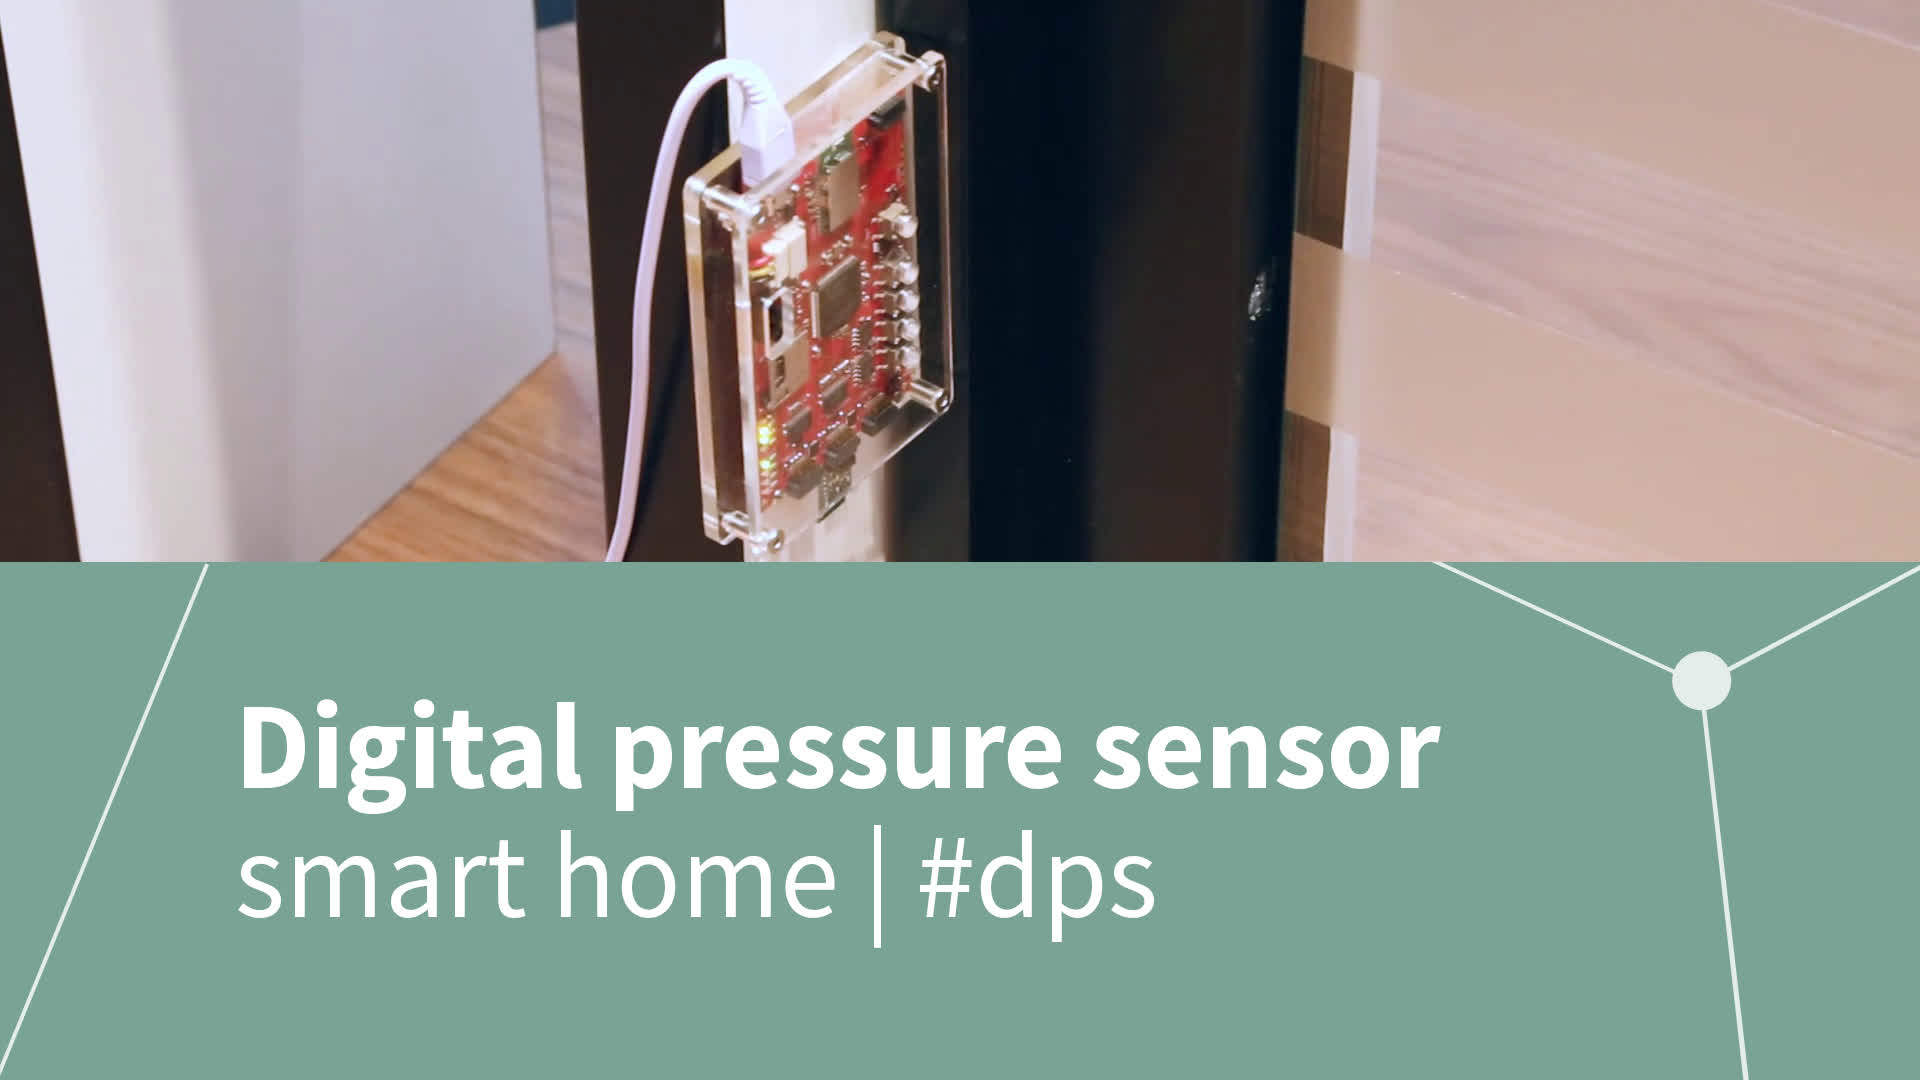 electronica 2016 - digital pressure sensor (DPS) @ ARROW booth